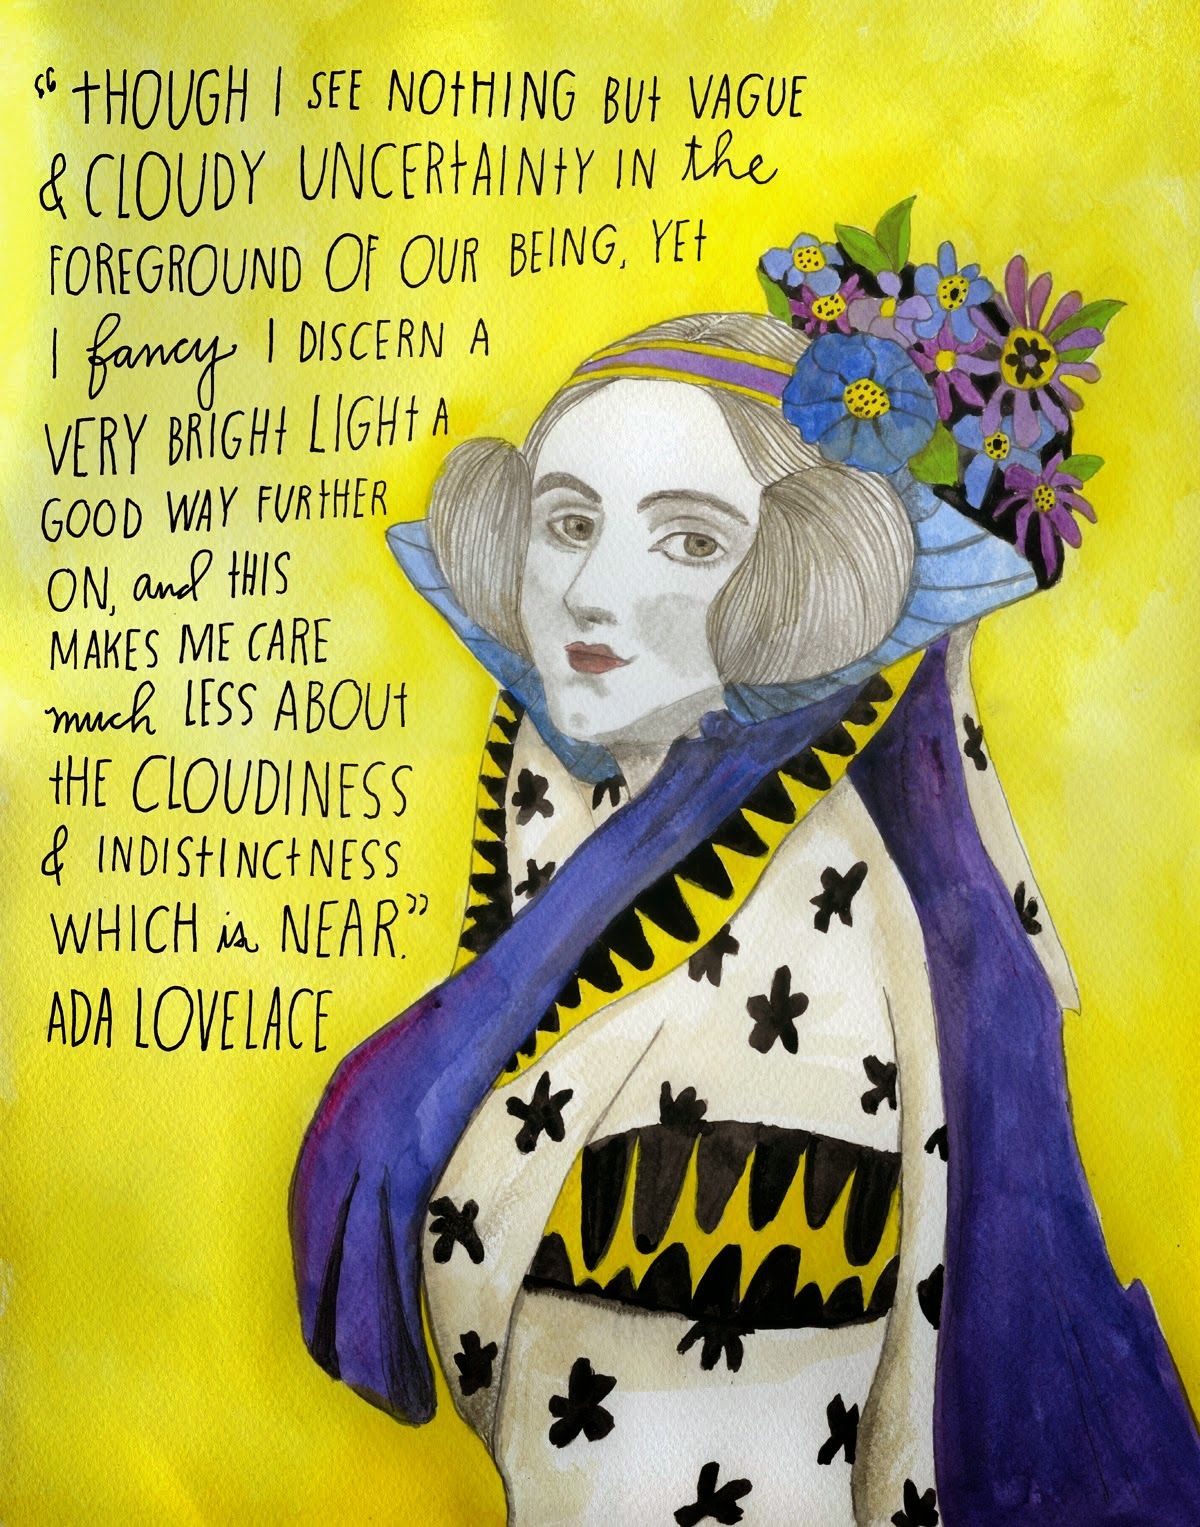 Ada Lovelace Image by Susan Congdon